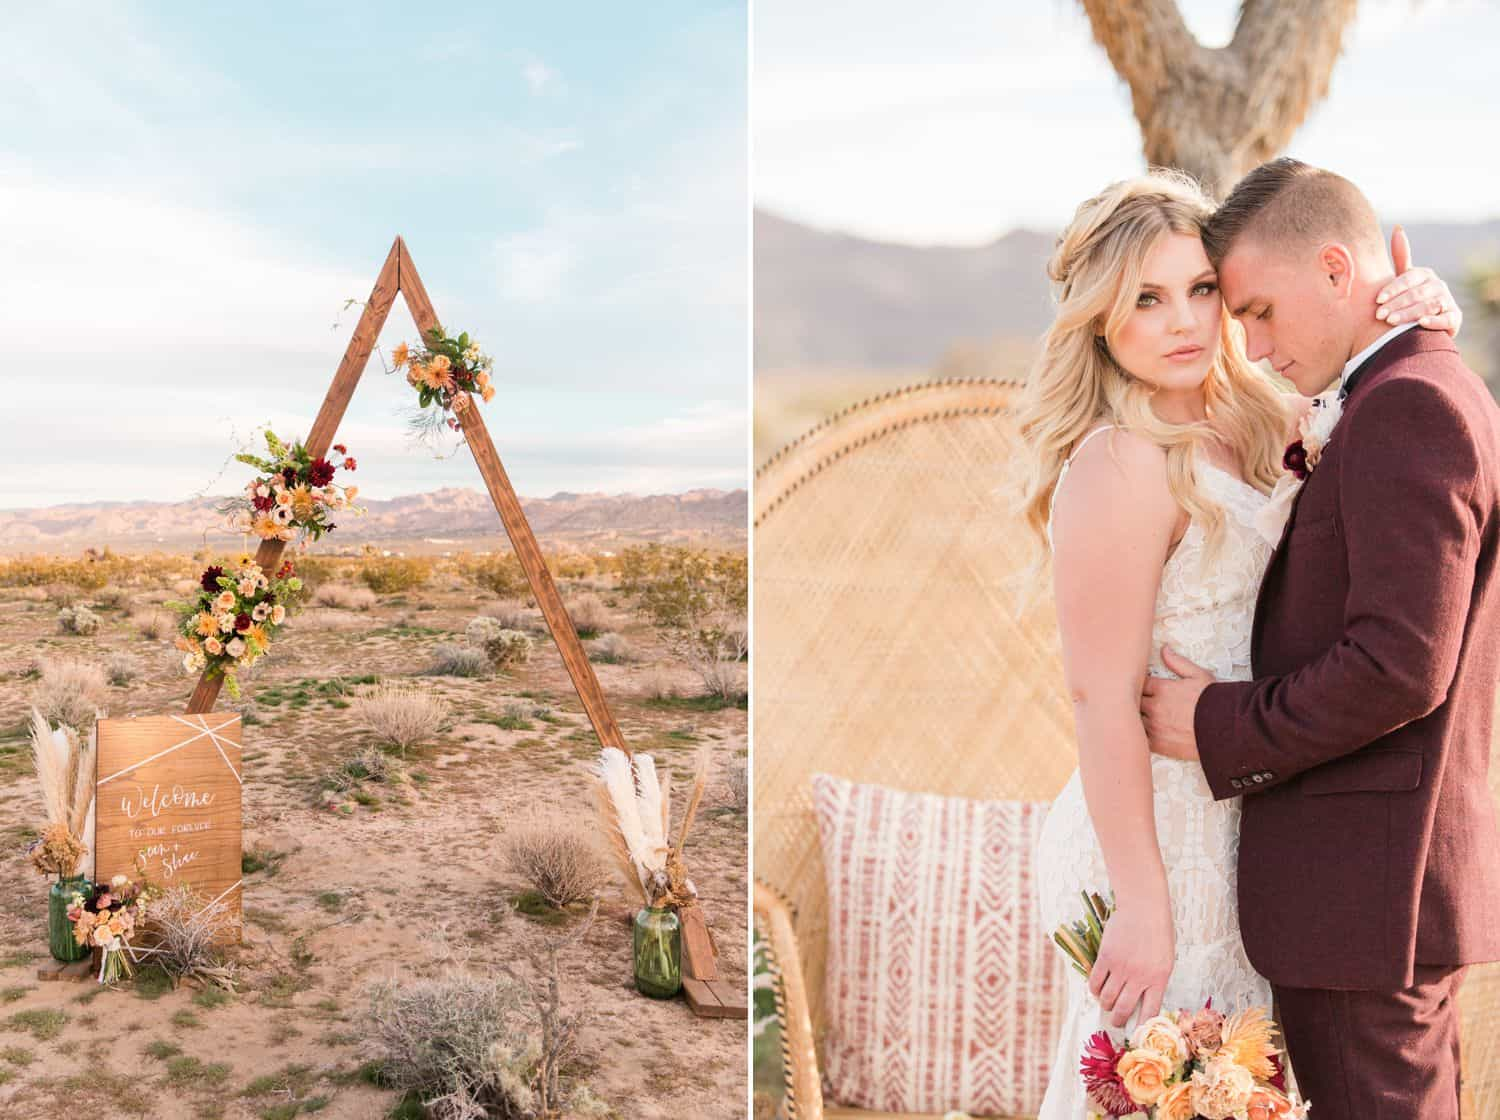 Tips for an Easy, Affordable Styled Shoot (bride and groom in the desert getting married under a modern arch)